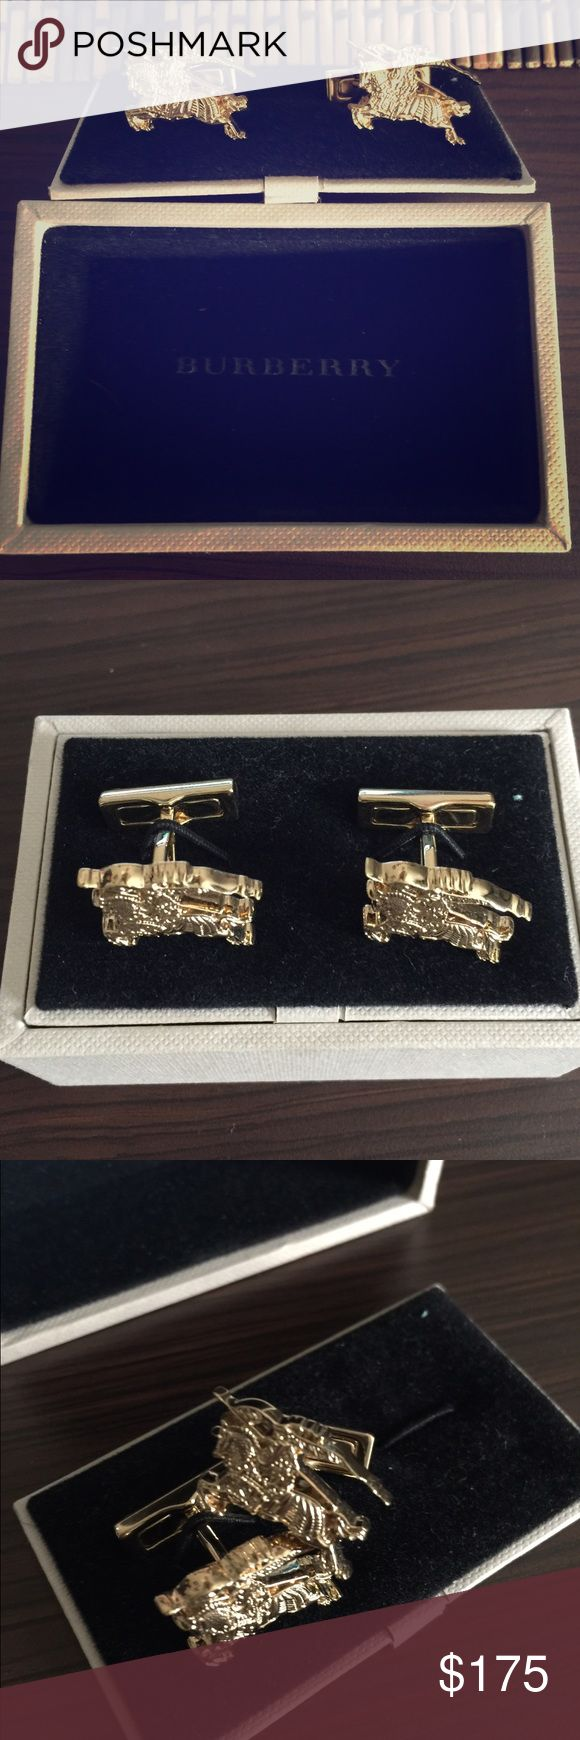 Gold Burberry Men's Equestrian Knight Cuff Links🐎 Brand new Burberry cufflinks. One owner. Worn once. Burberry Accessories Cuff Links